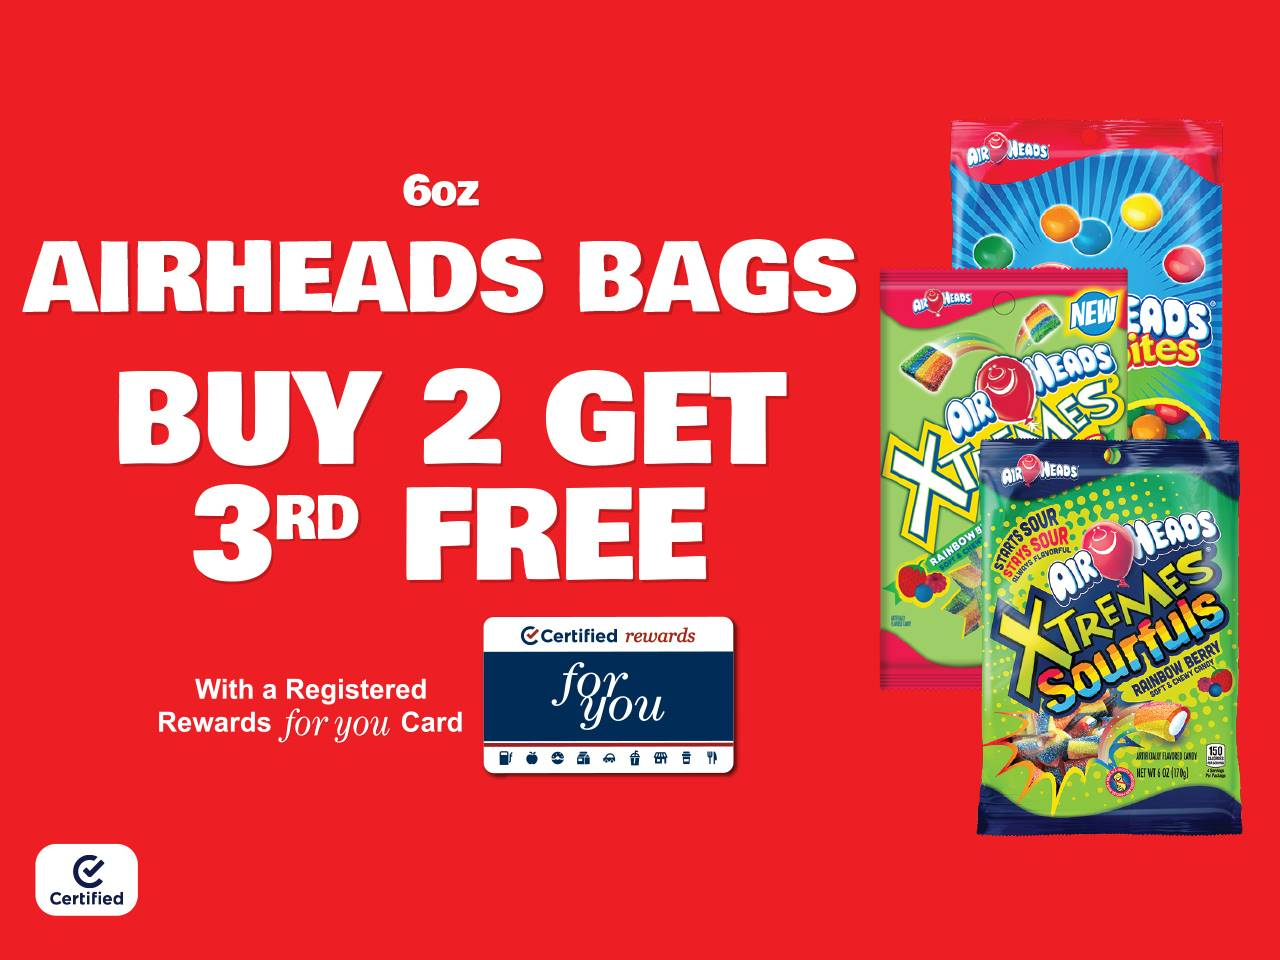 6oz Airheads Bags Buy 2 Get 3rd Free with a Registered Rewards For You Card